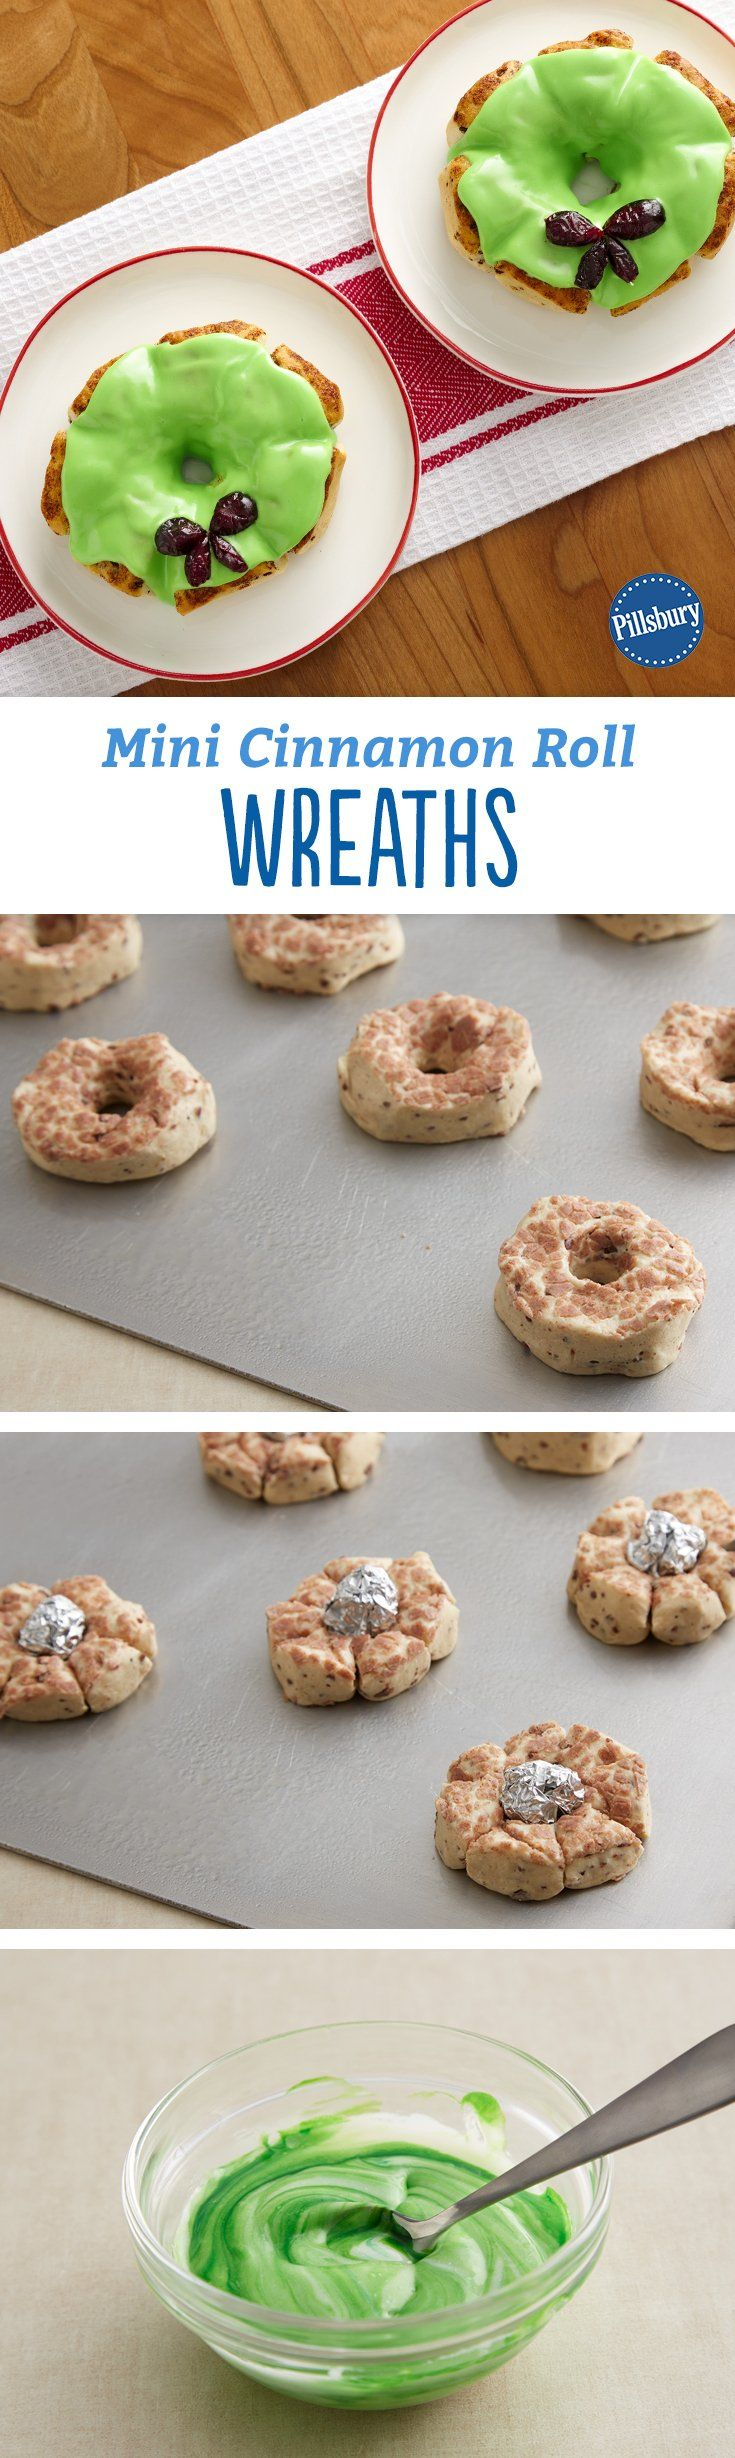 These too-cute Mini Cinnamon Roll Wreaths are the perfect kid-friendly holiday breakfast! Expert tip: If you don't like cranberries, almost any dried fruit will work in their place. For large pieces, use kitchen scissors to cut into bow shapes.